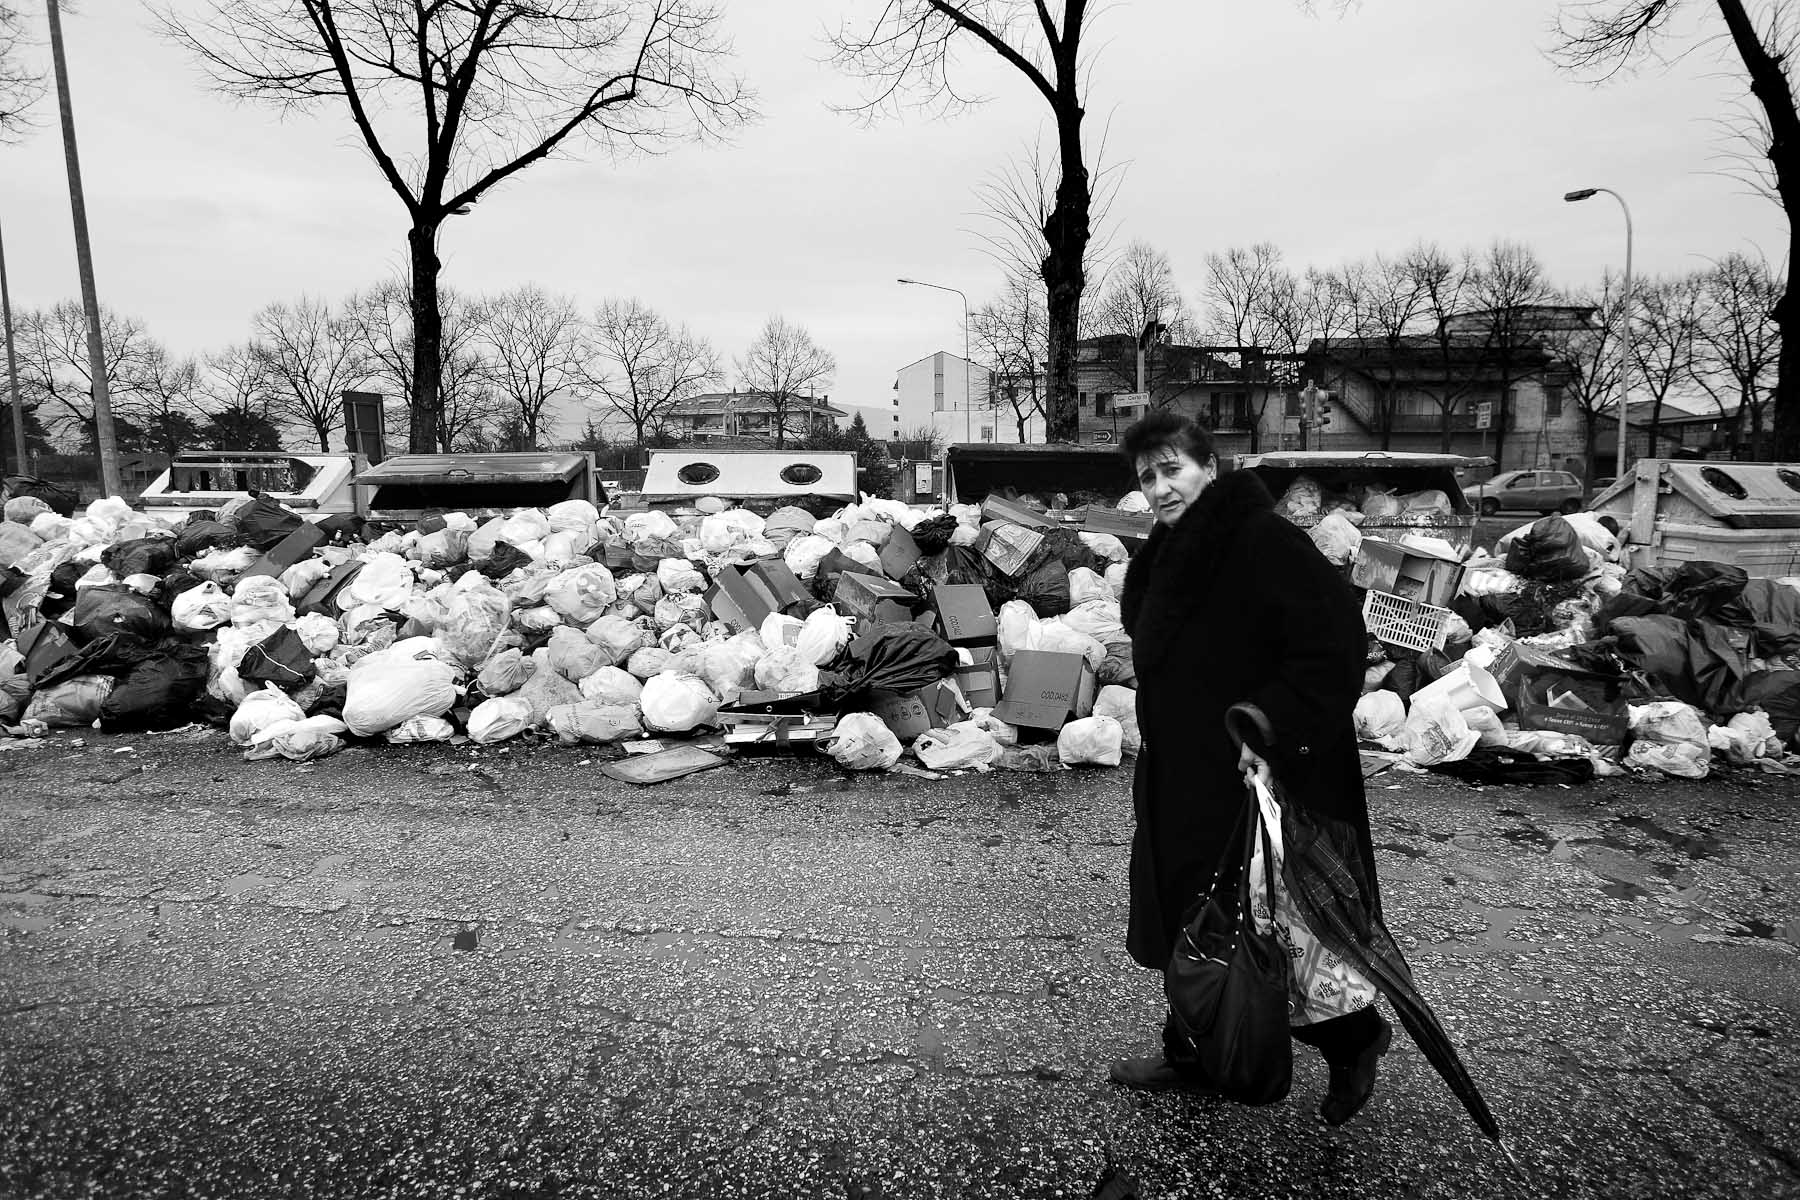 A woman walks past a pile of garbage on a street in Caserta, Naples' neighbouring city, on February 21, 2008.